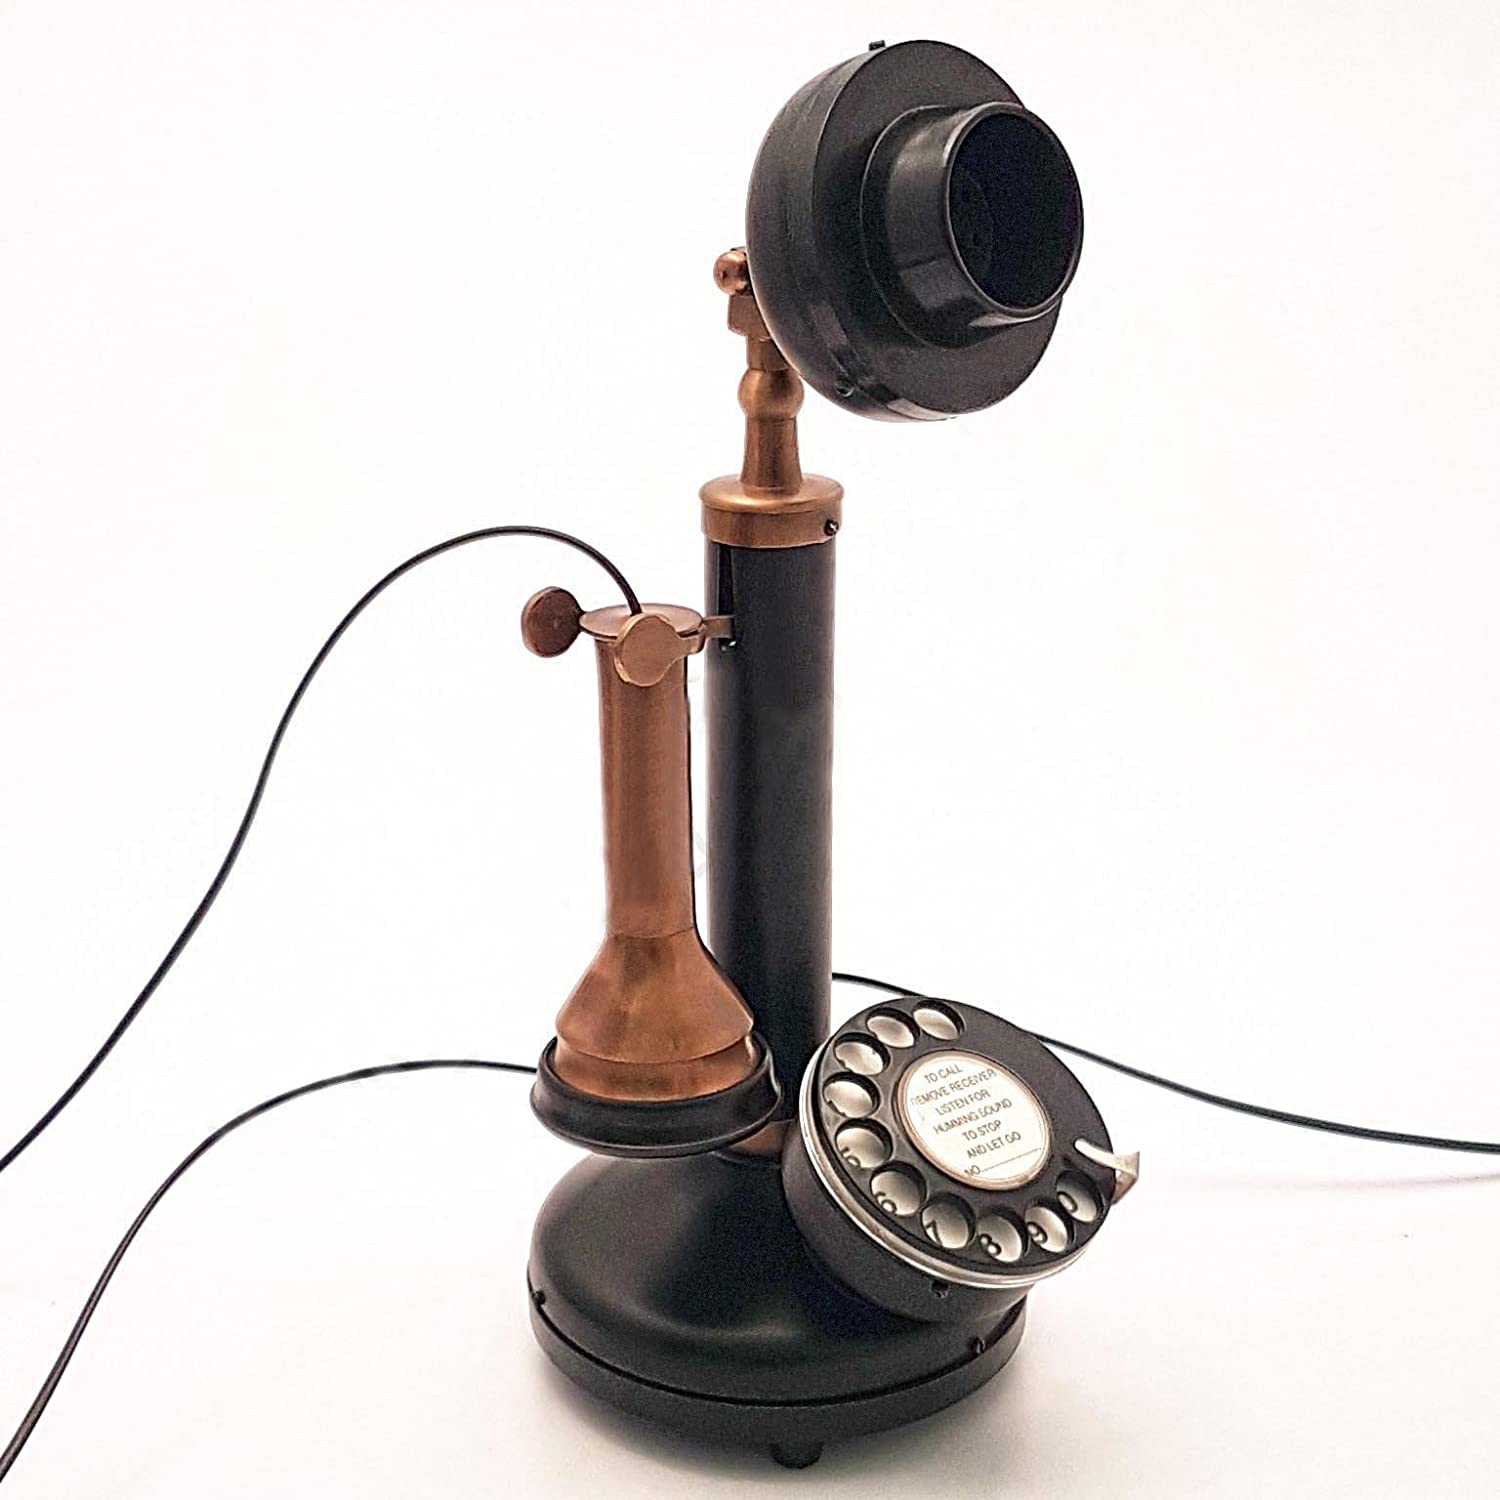 Decor Art International Classic Antique Replica Brass & Iron Rotary Dial Candlestick Working Telephone. Handmade